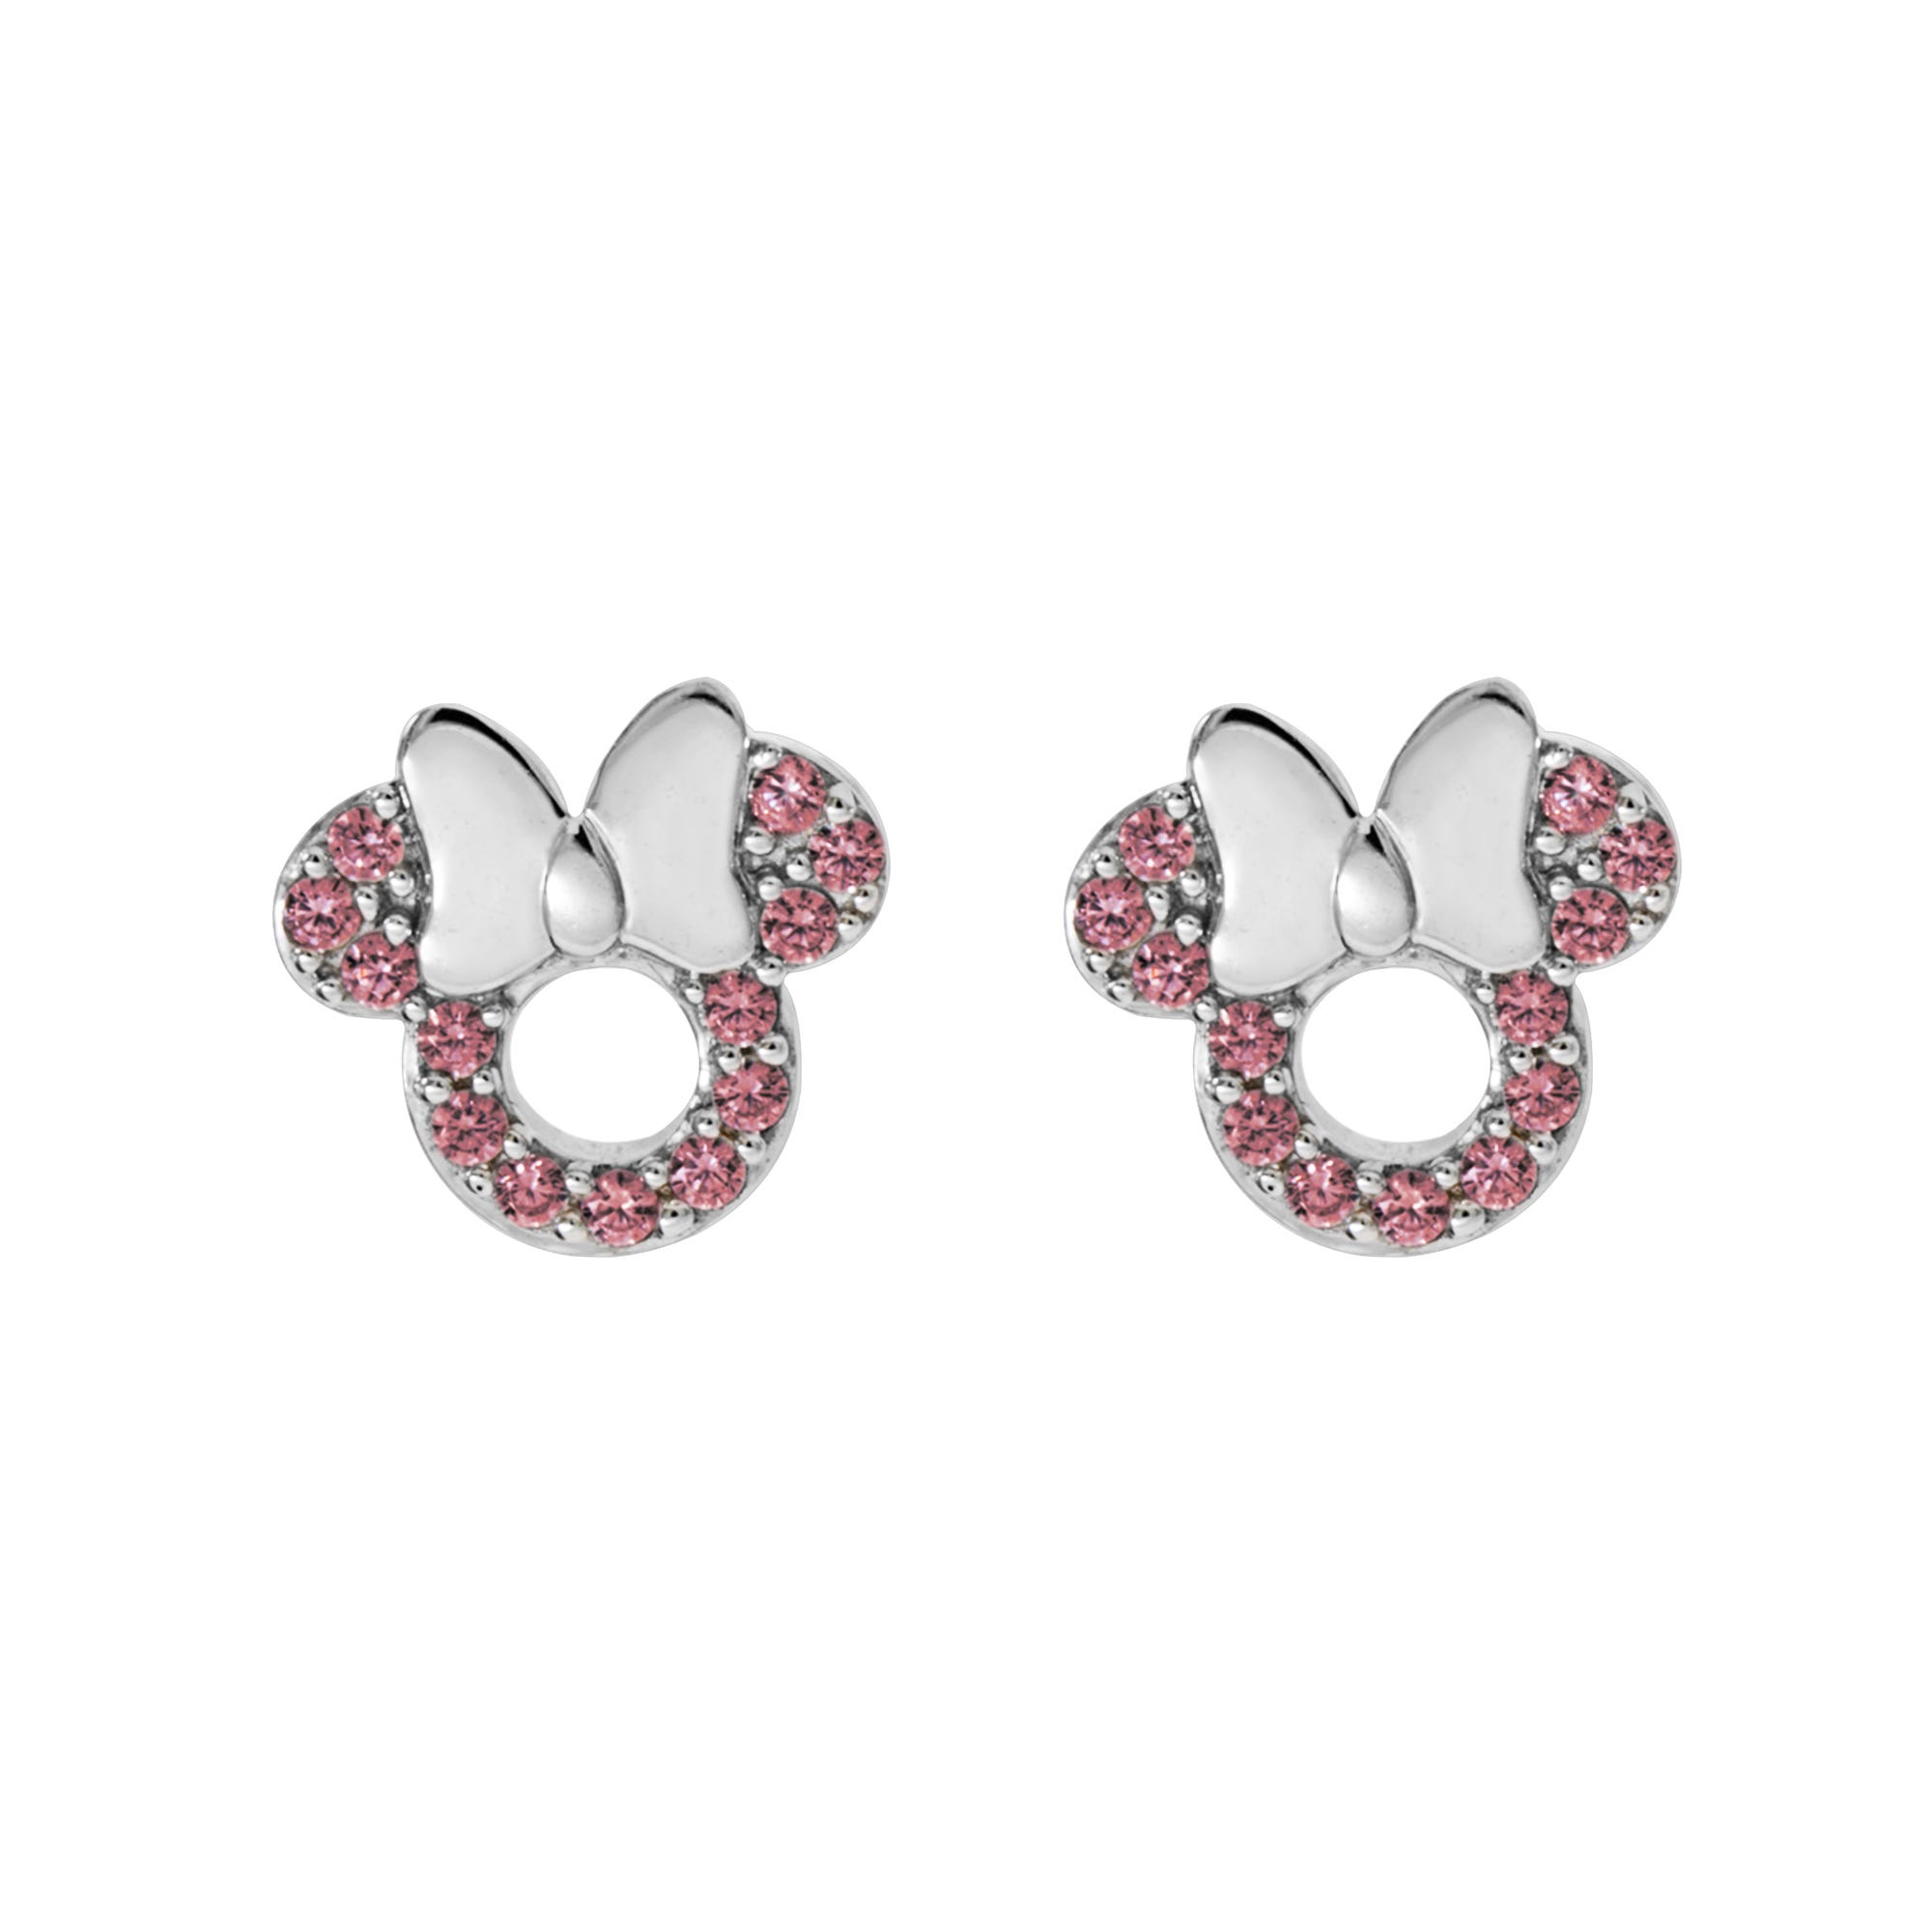 DISNEY© Minnie Mouse Pink CZ Earrings in Sterling Silver